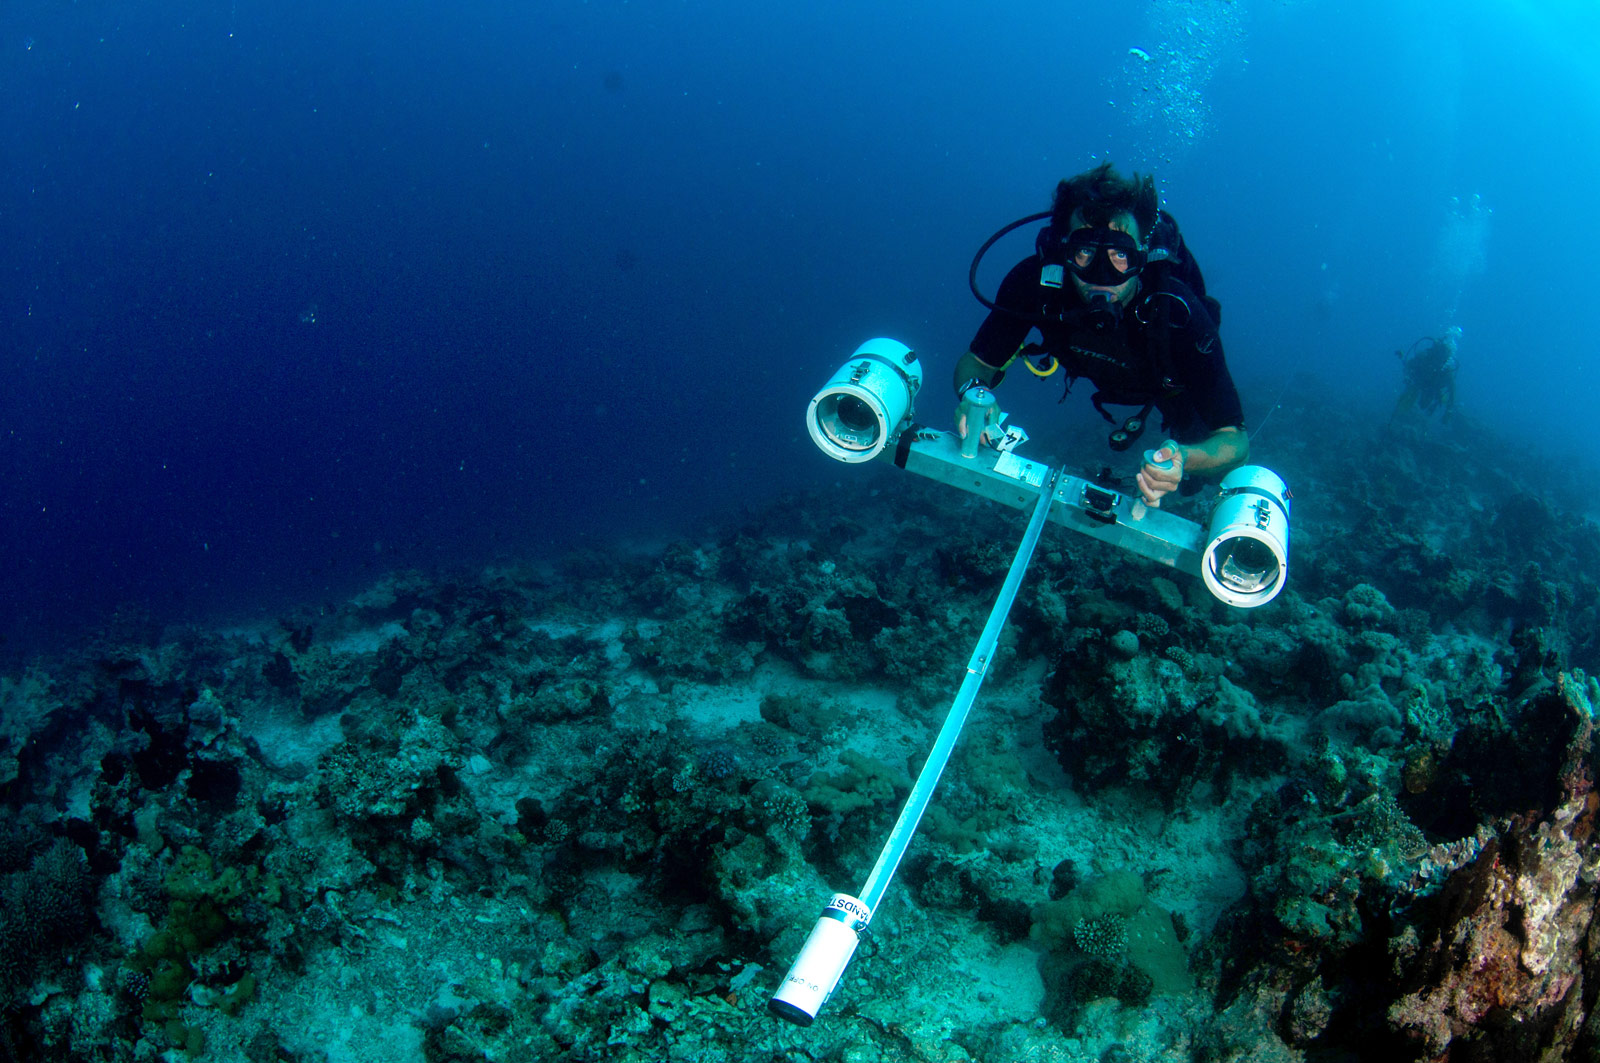 east-african-coral-reef-diving-Copyright-Caine-Delacy-2012-2038